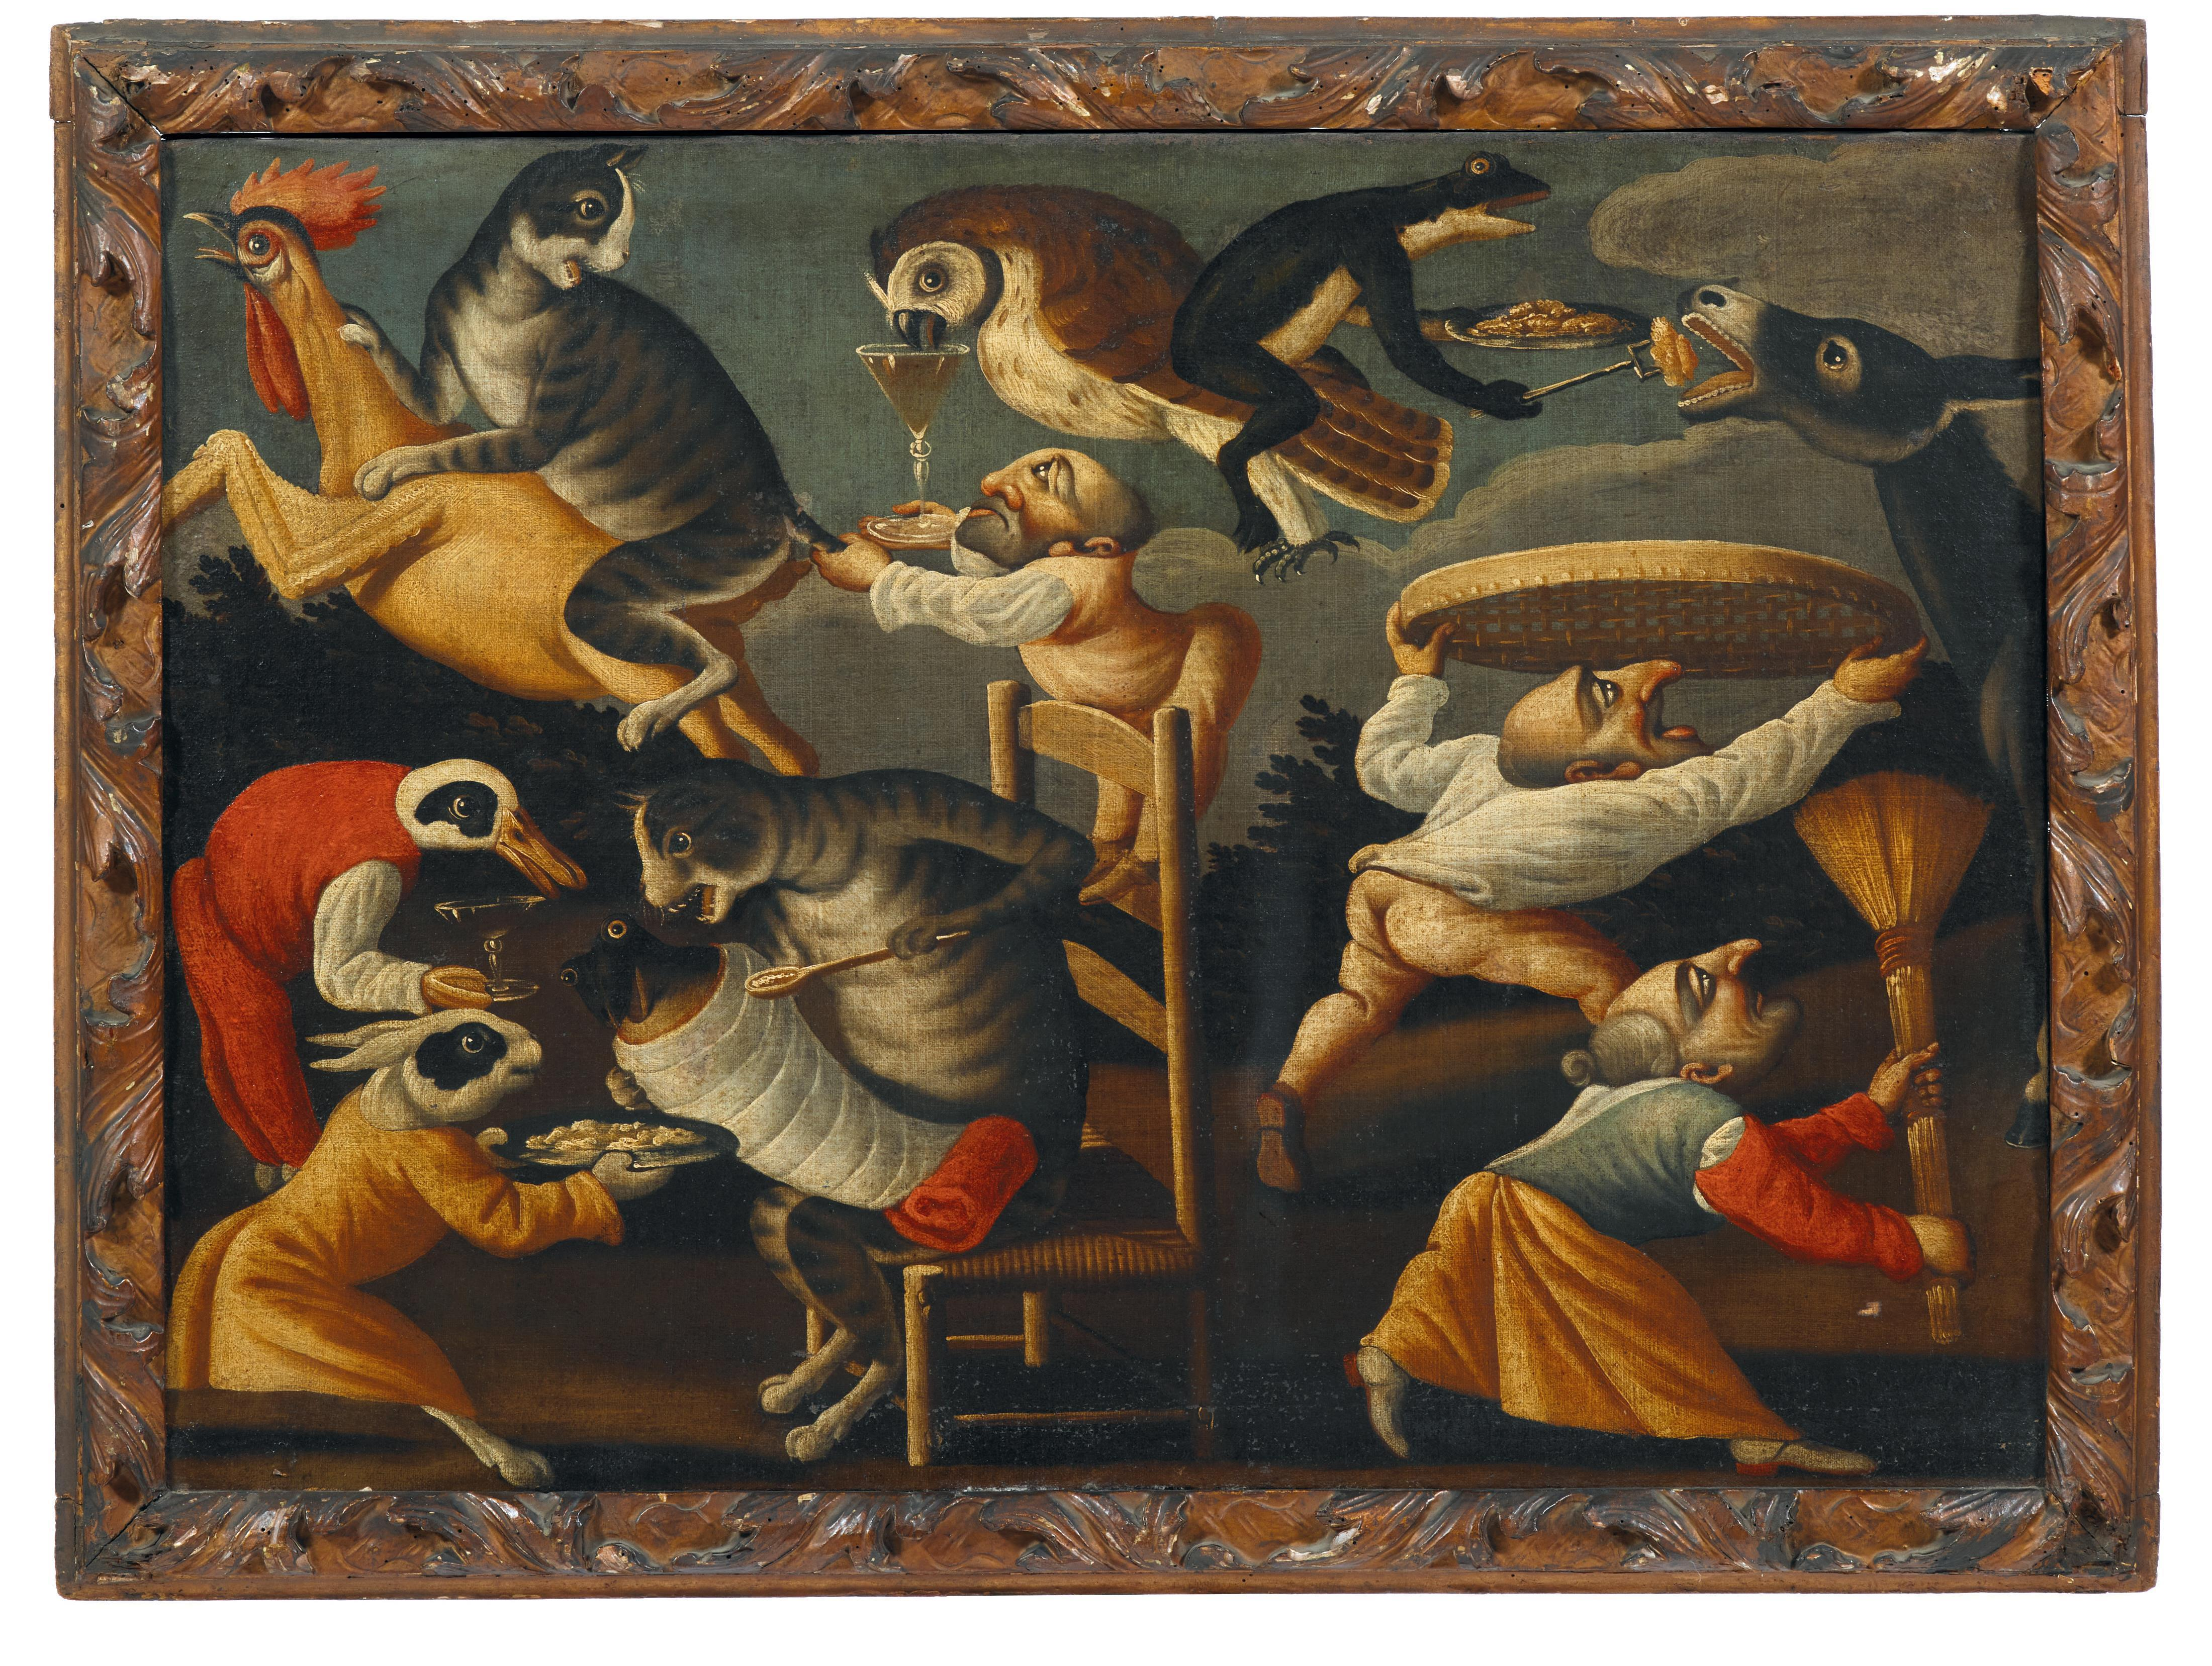 Master of the Fertility of the Egg, (Brescia, active in the 17th Century), A grotesque scene with dwarfs and animals and a frog in swaddling clothes, oil on canvas, 66 x 92 cm, estimate €15,000 - 25,000